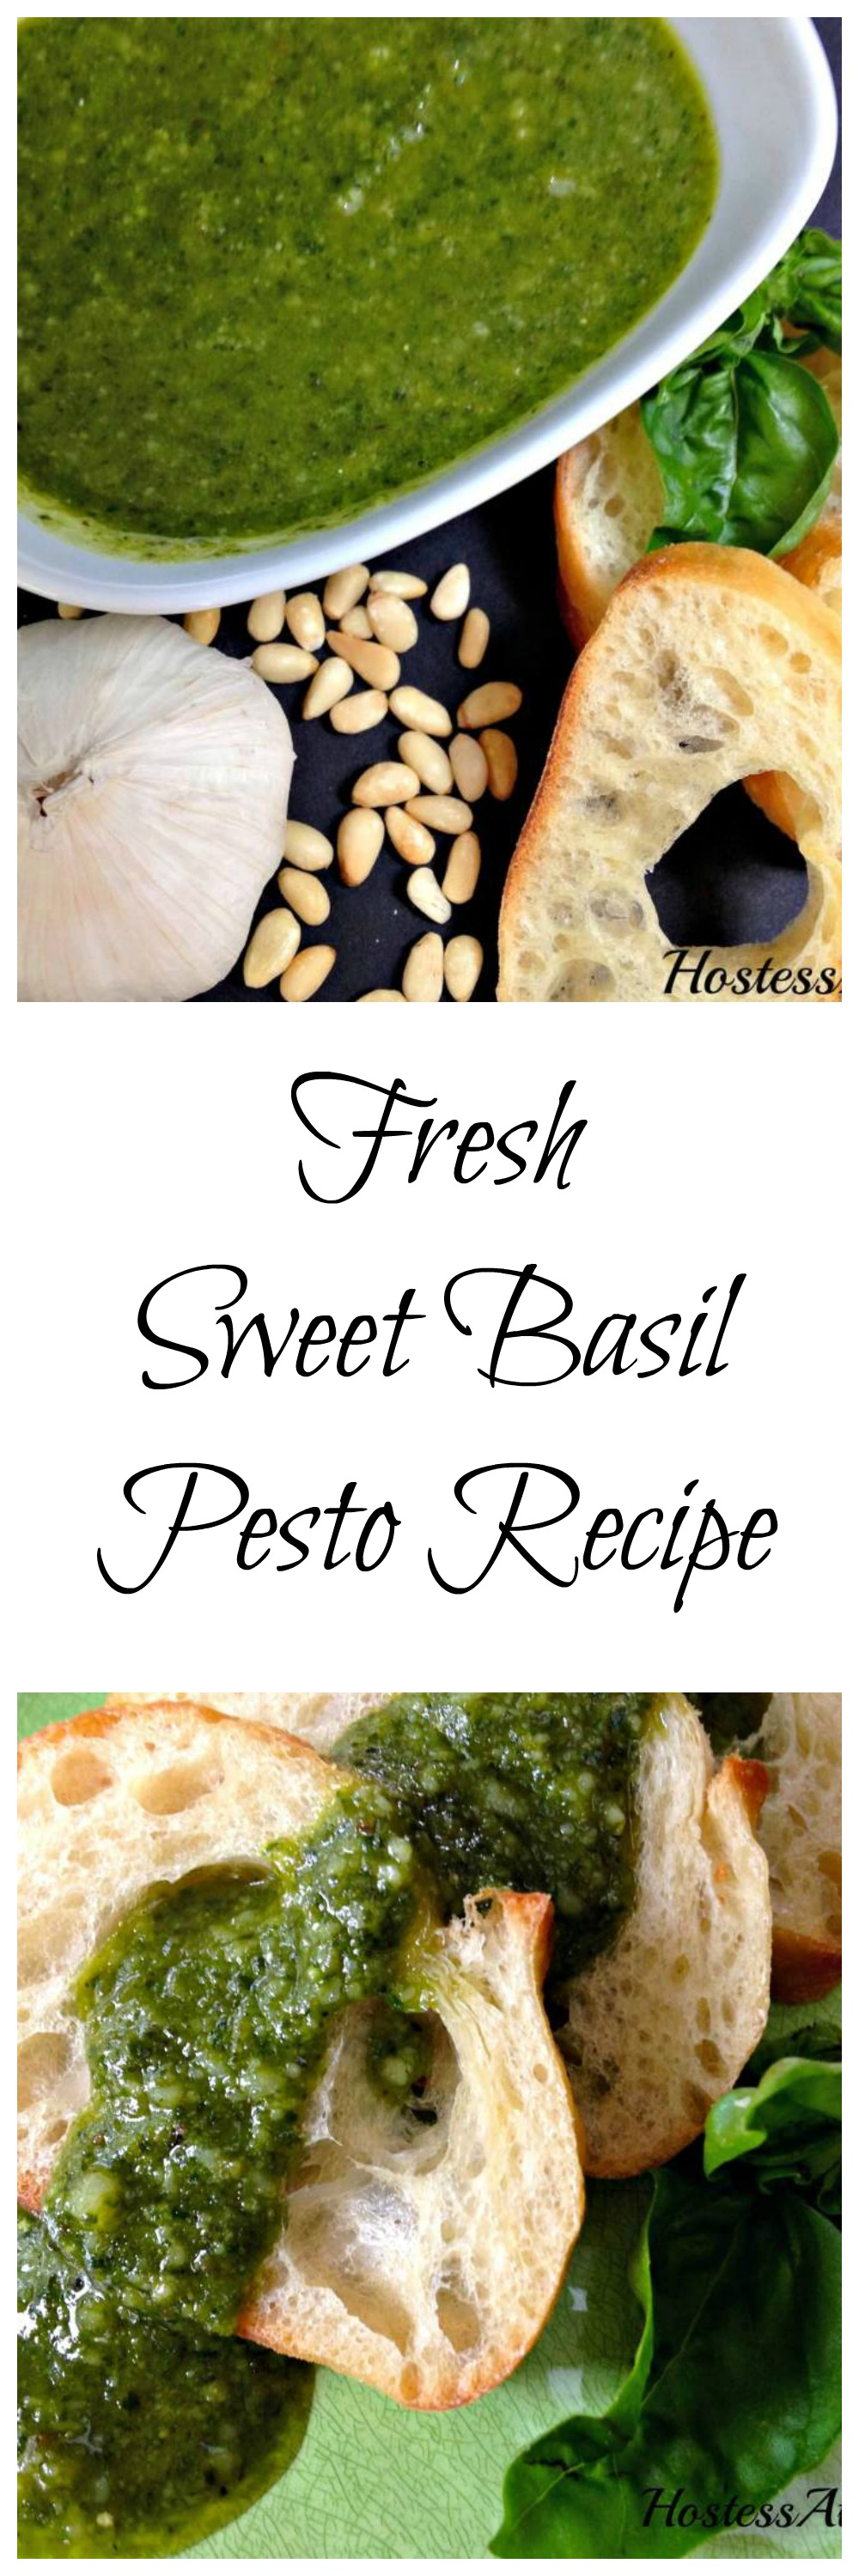 This Sweet Basil Pesto Recipe is absolutely delicious on a baguette, drizzled over grilled meats or combined in pasta dishes. | HostessAtHeart.com